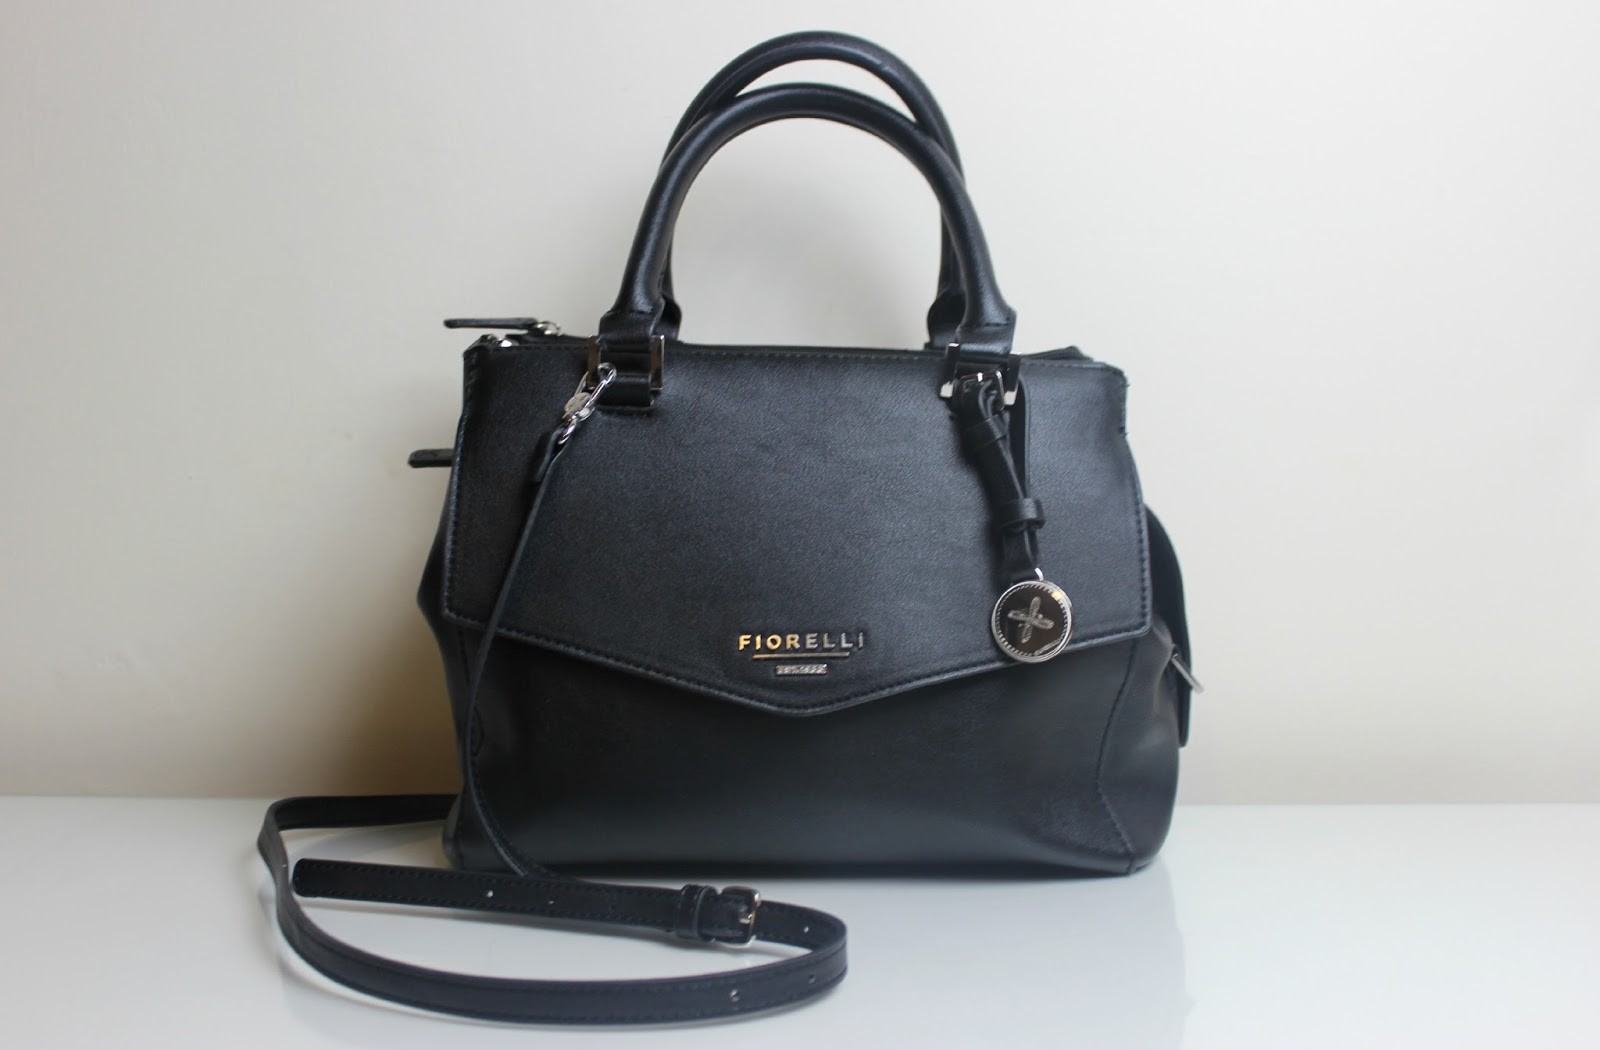 A picture of the Fiorelli Mia Grab Bag